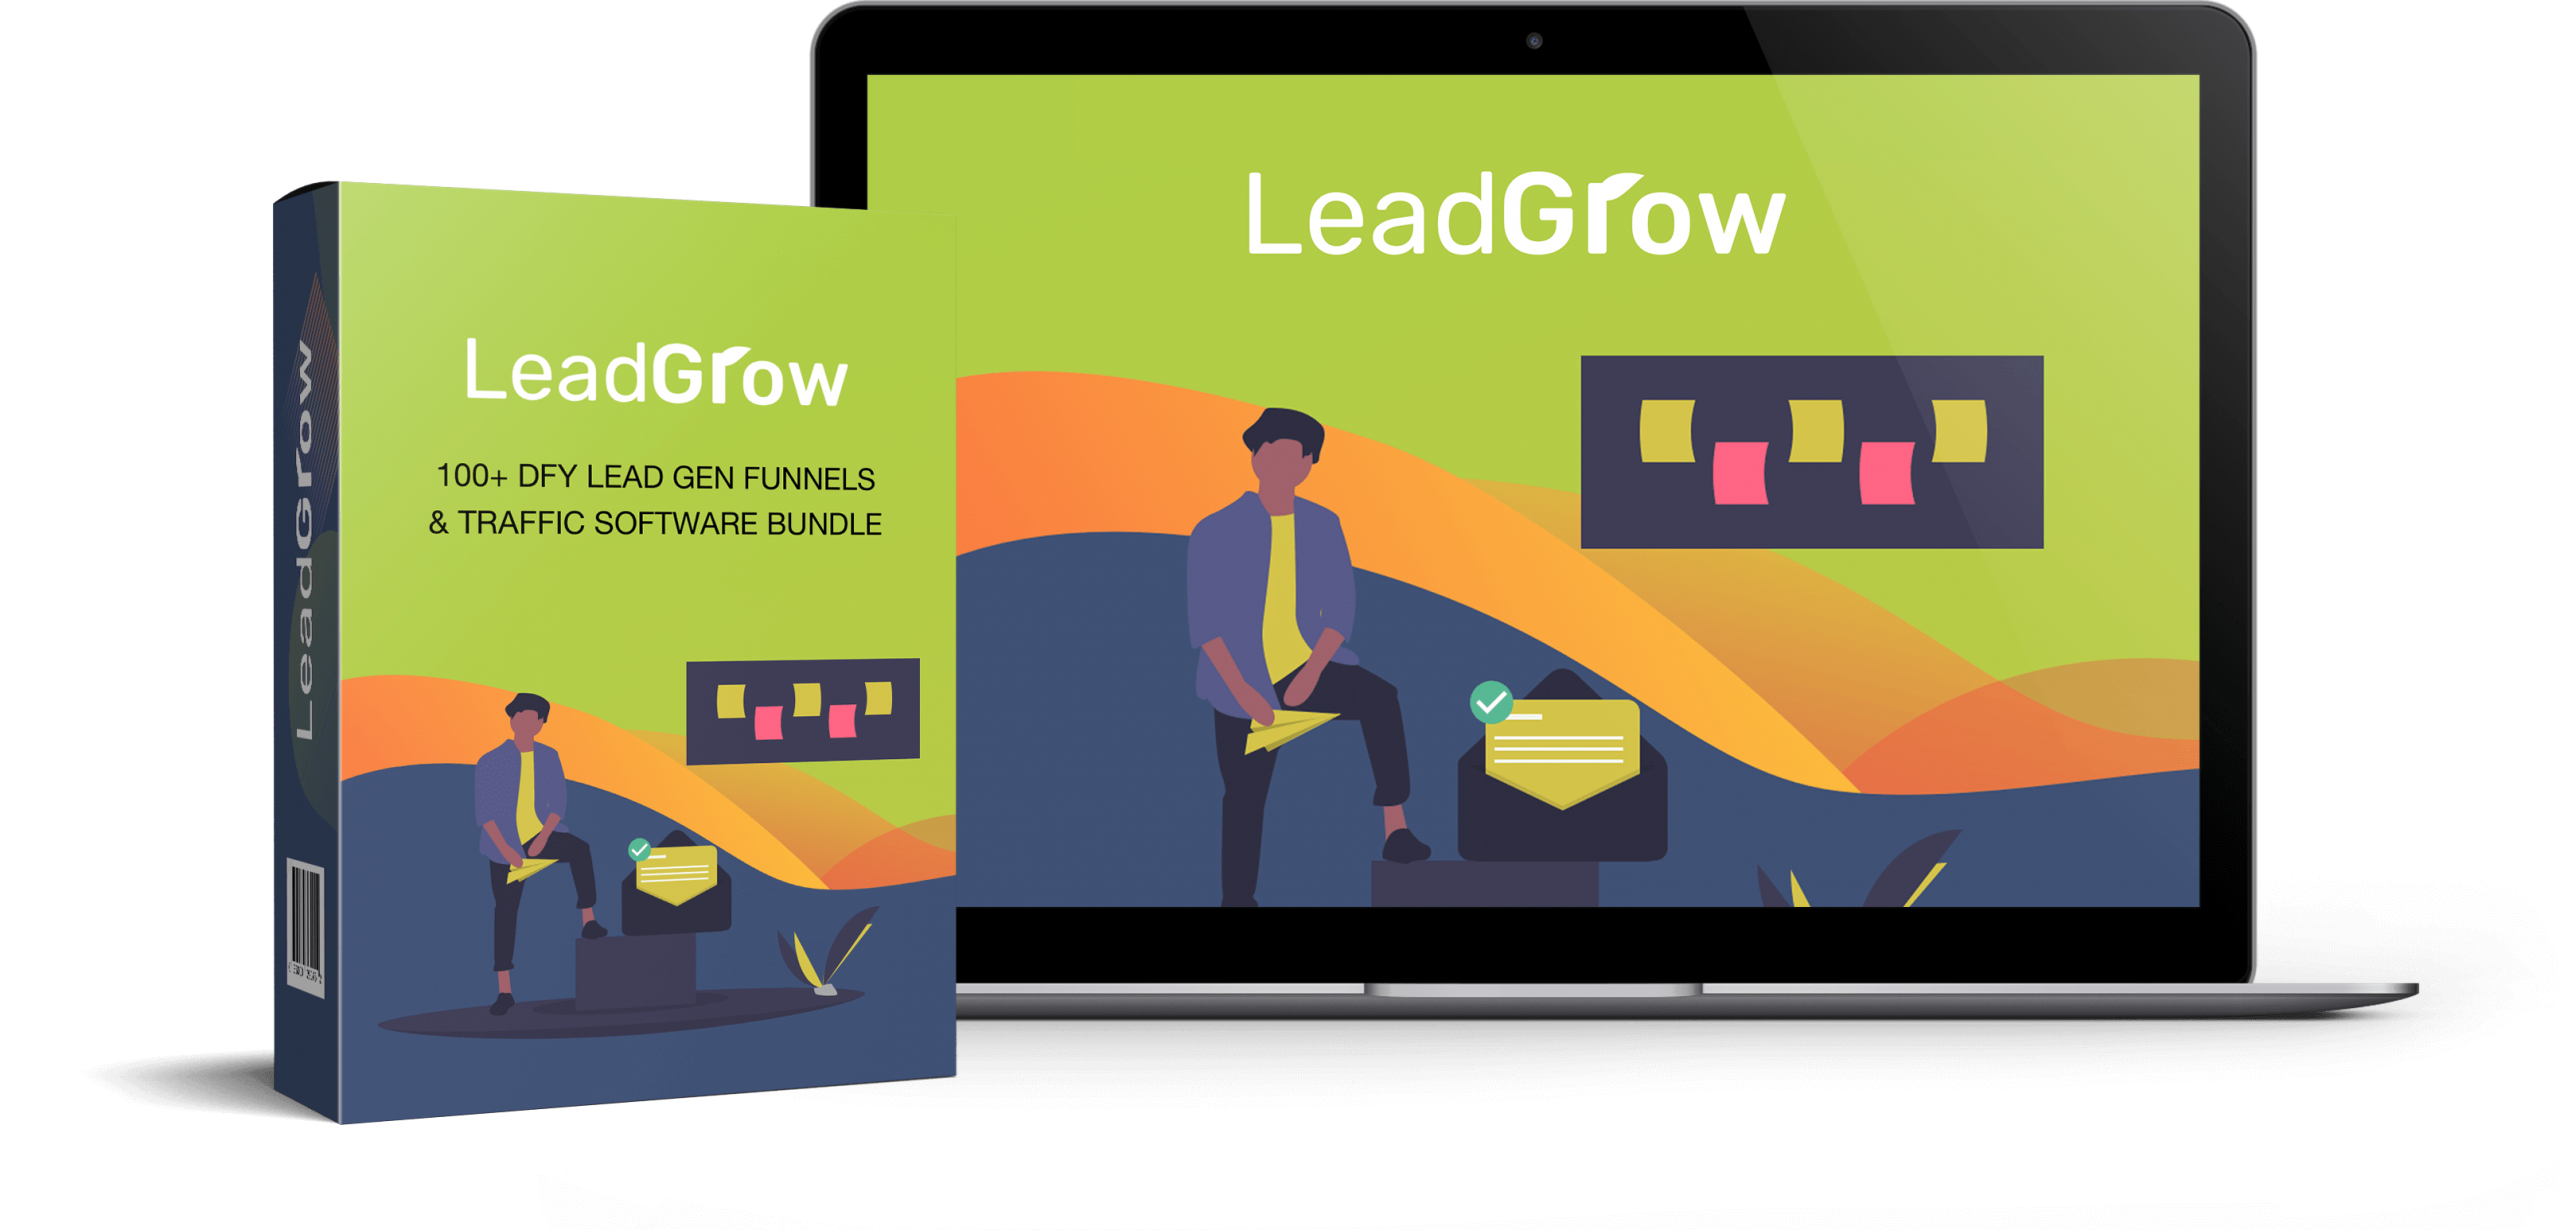 Commercial License to LeadGrow Software